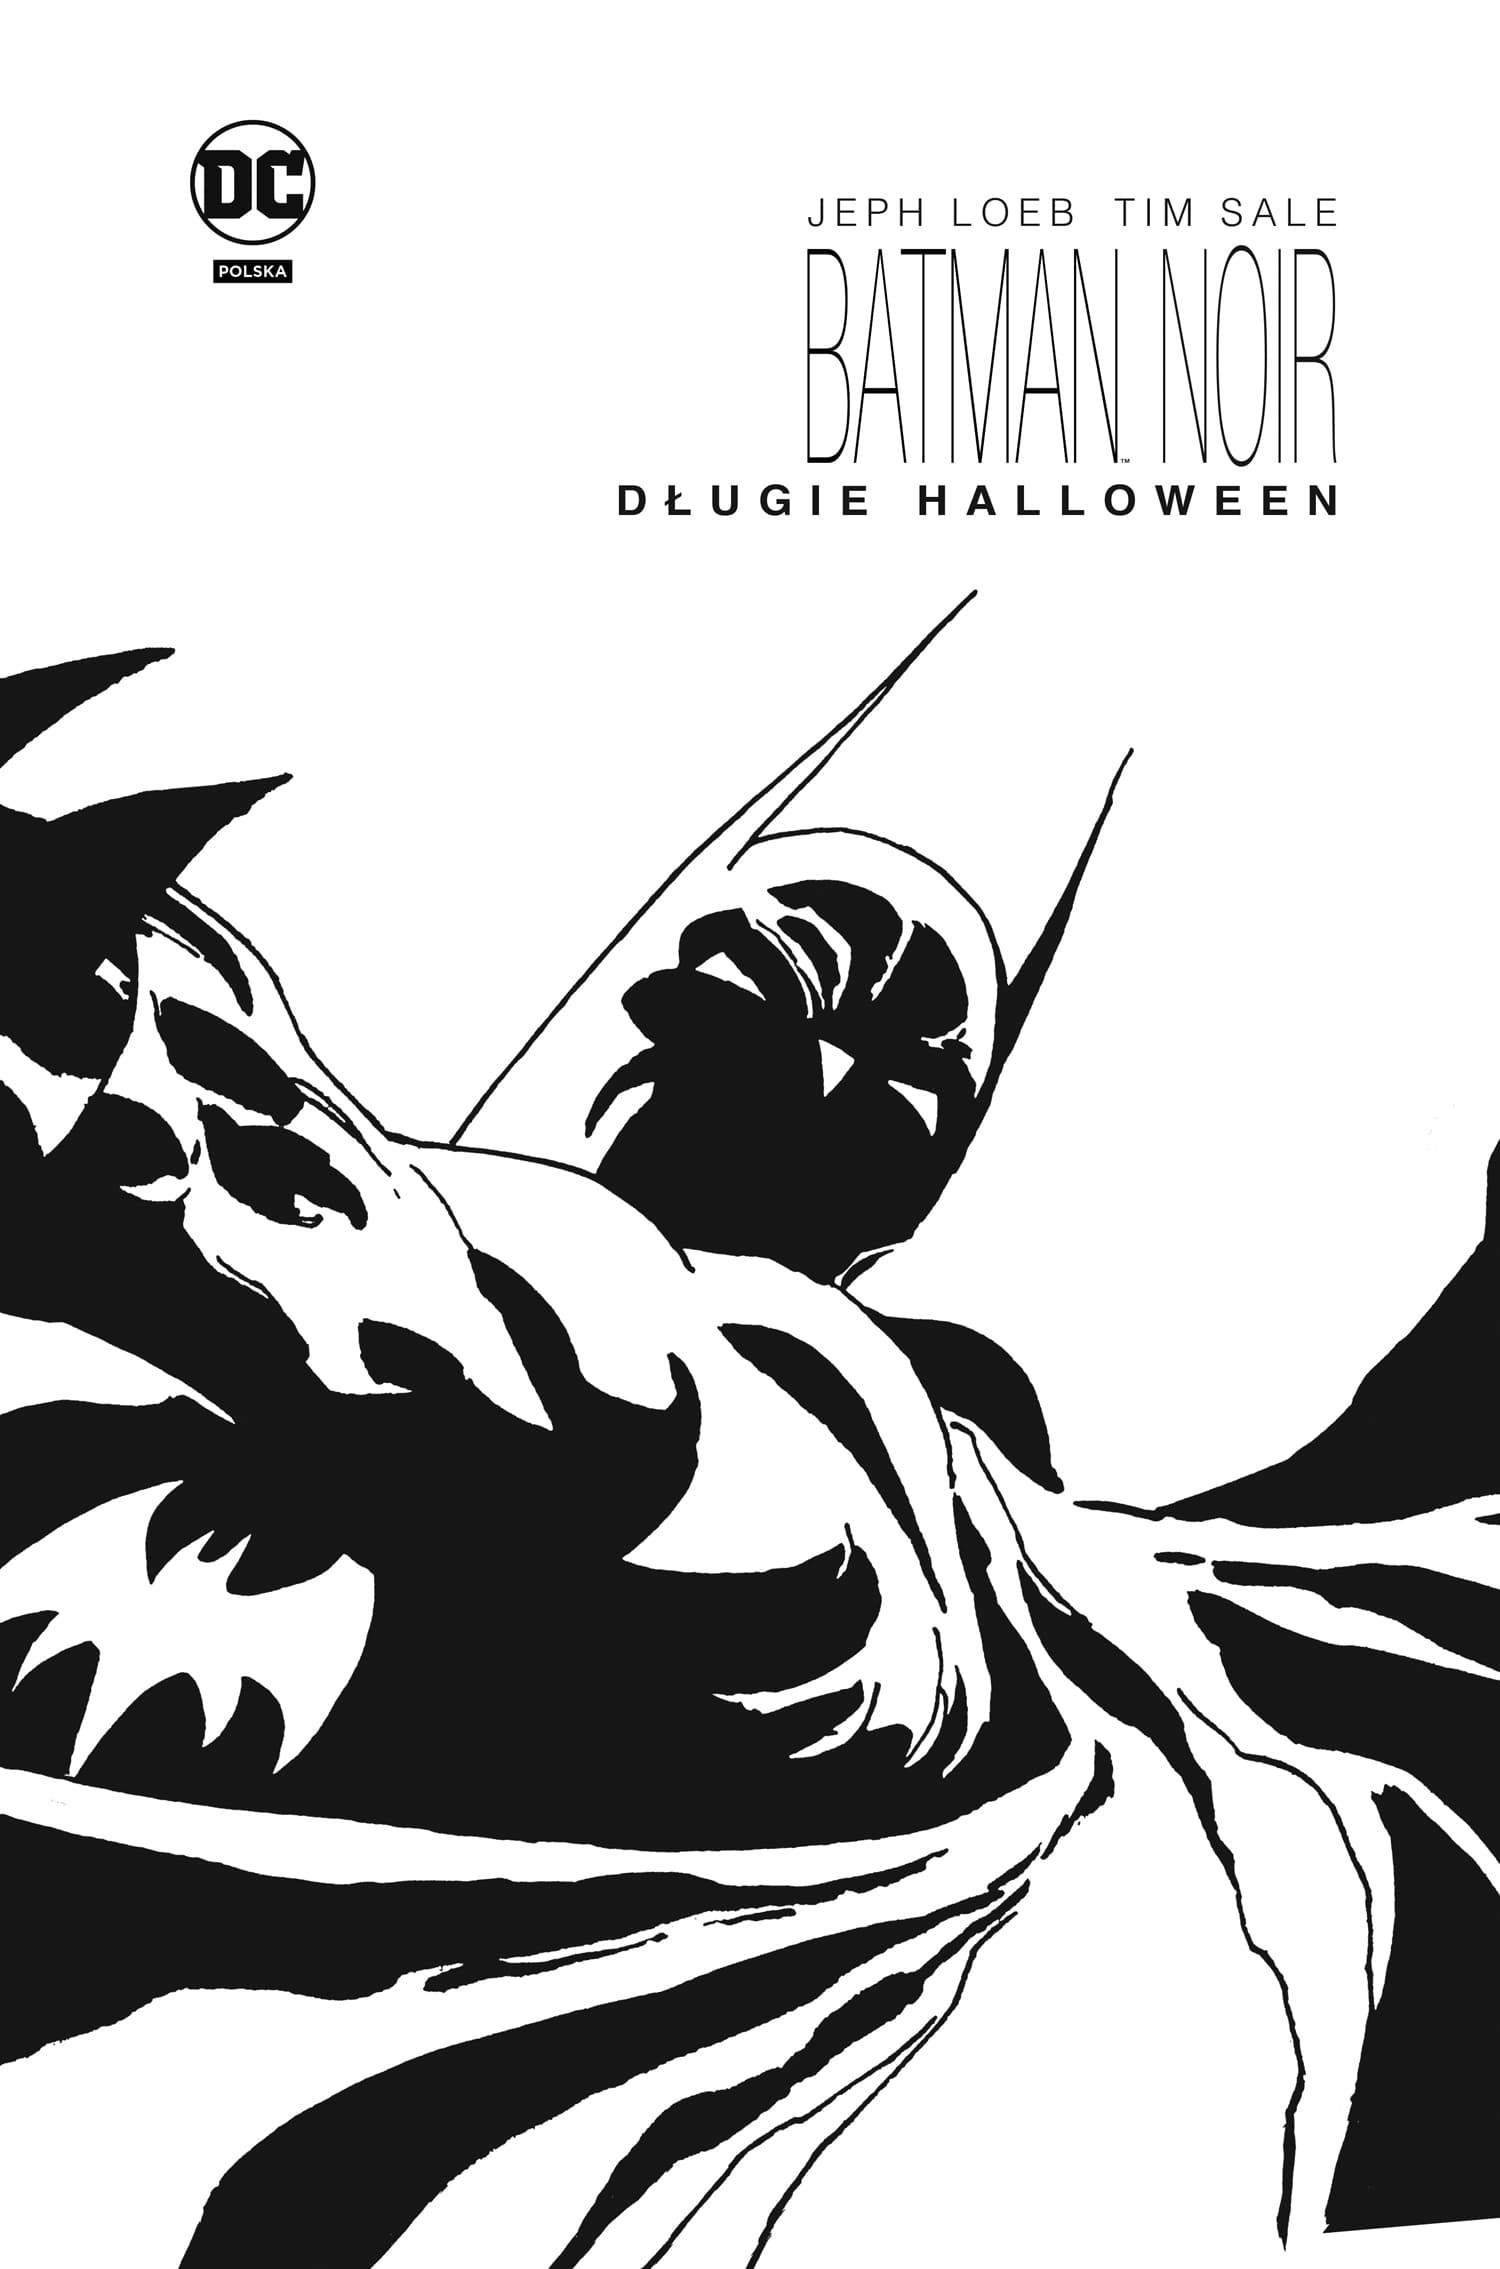 BATMAN noir_HALLOWEEN_cover 300 dpi-min.jpg